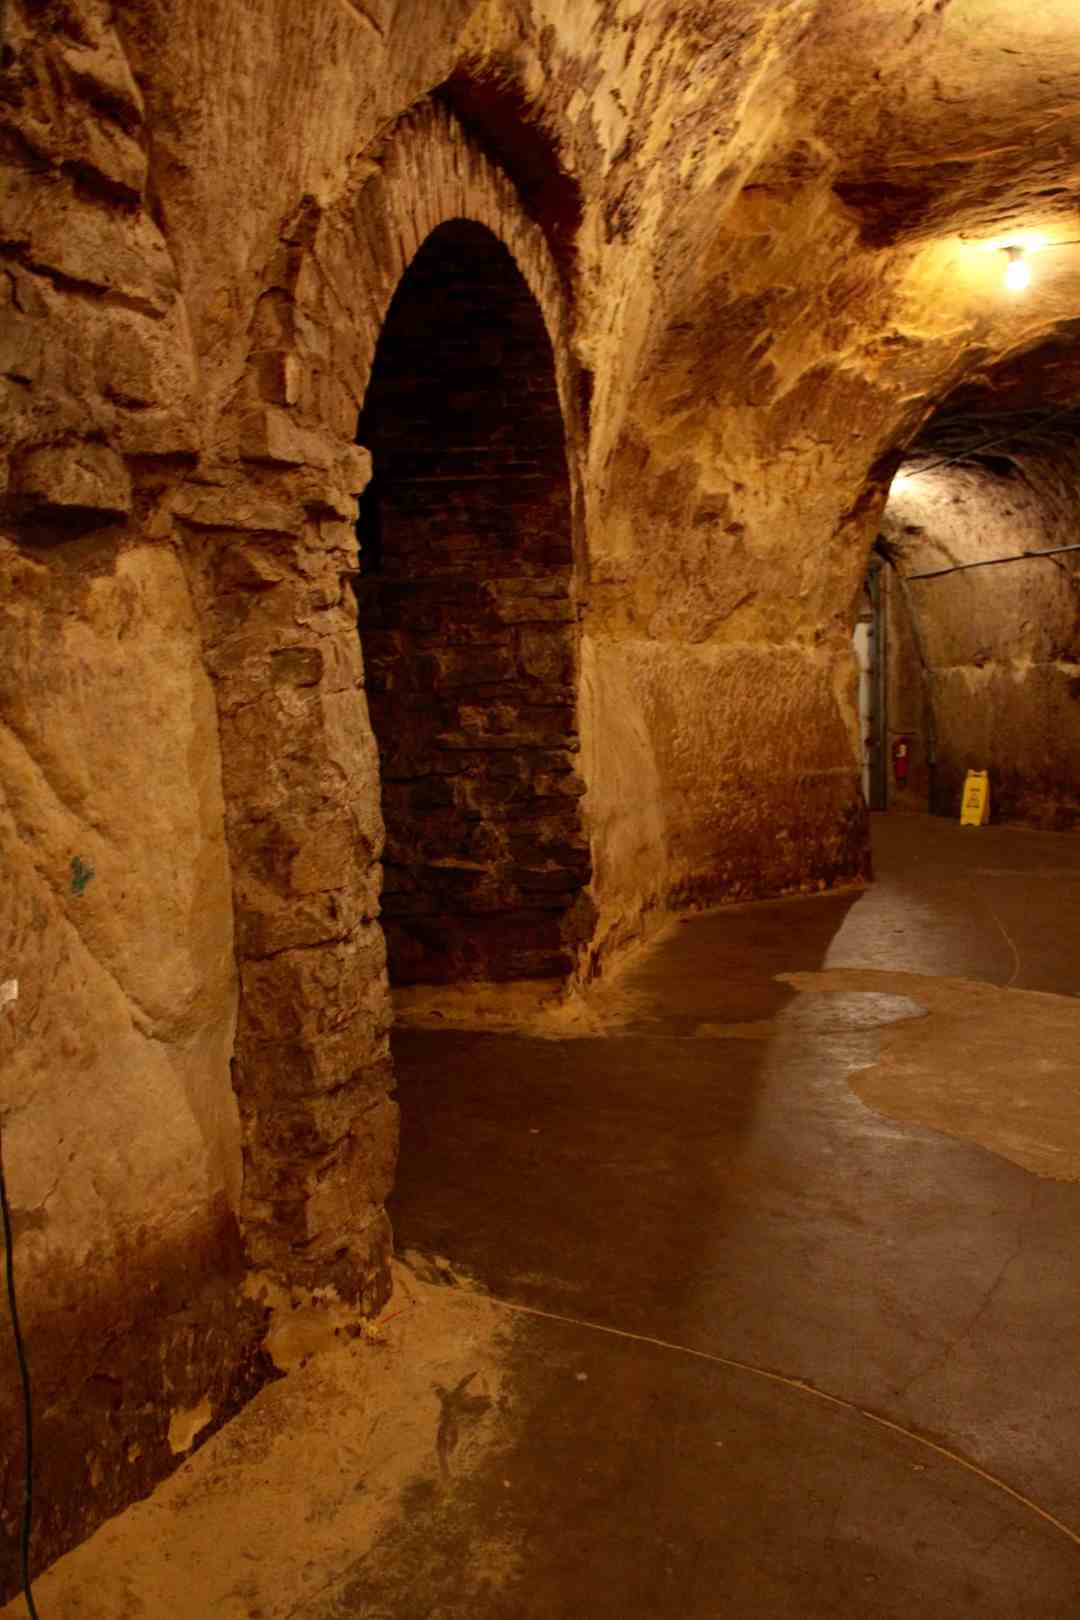 Haunted places in mn, the Hallways of Wabasha Street Caves